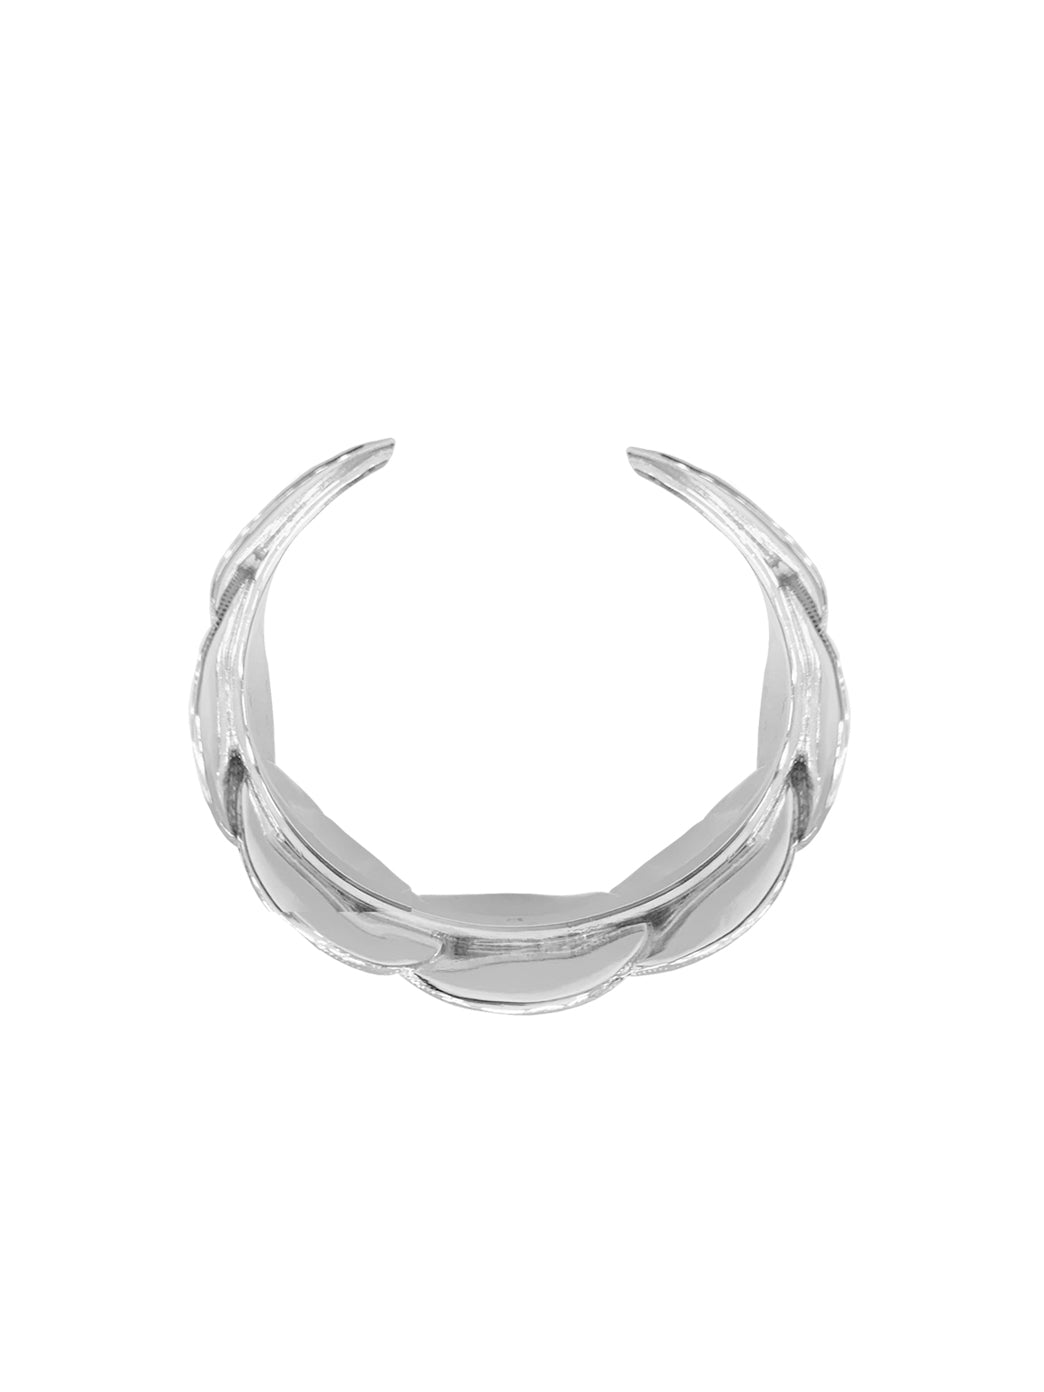 Fiorina Jewellery King George Medley Cuff Top View